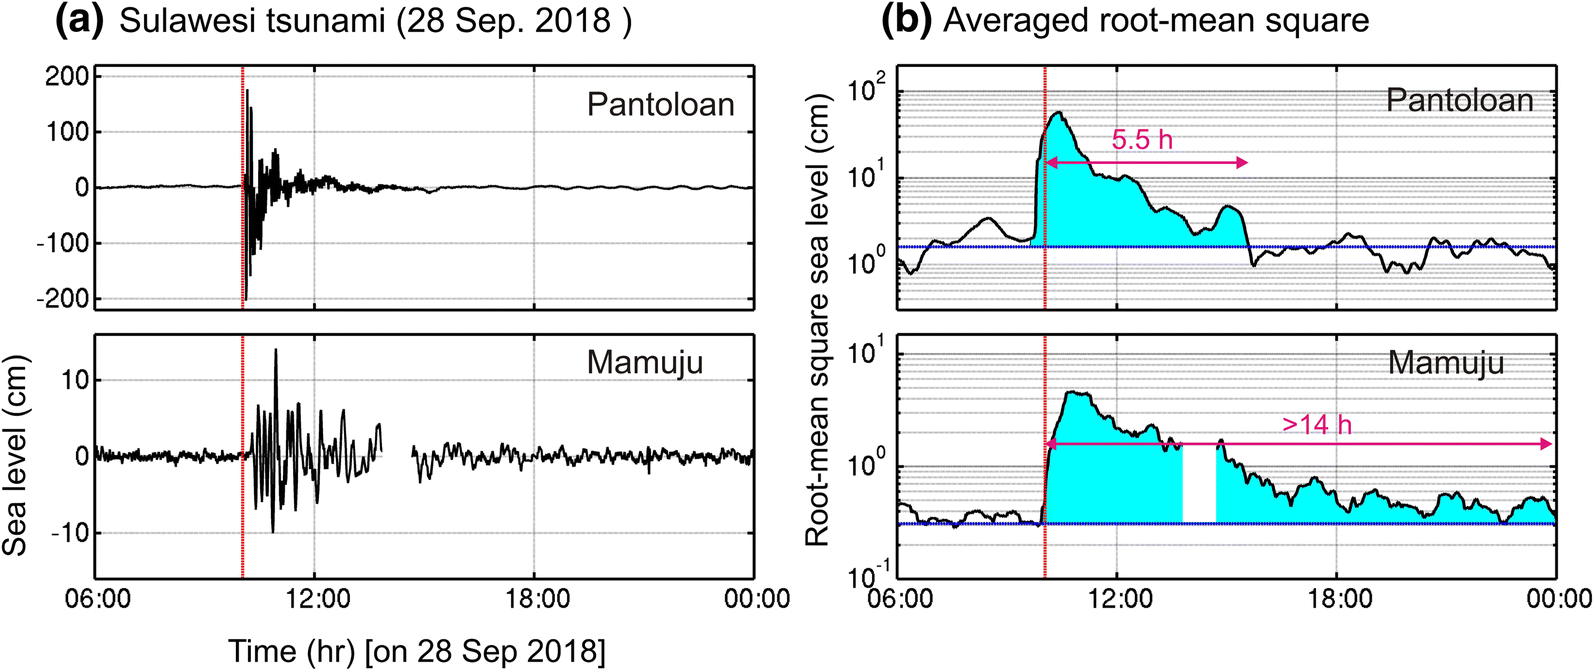 Insights on the Source of the 28 September 2018 Sulawesi